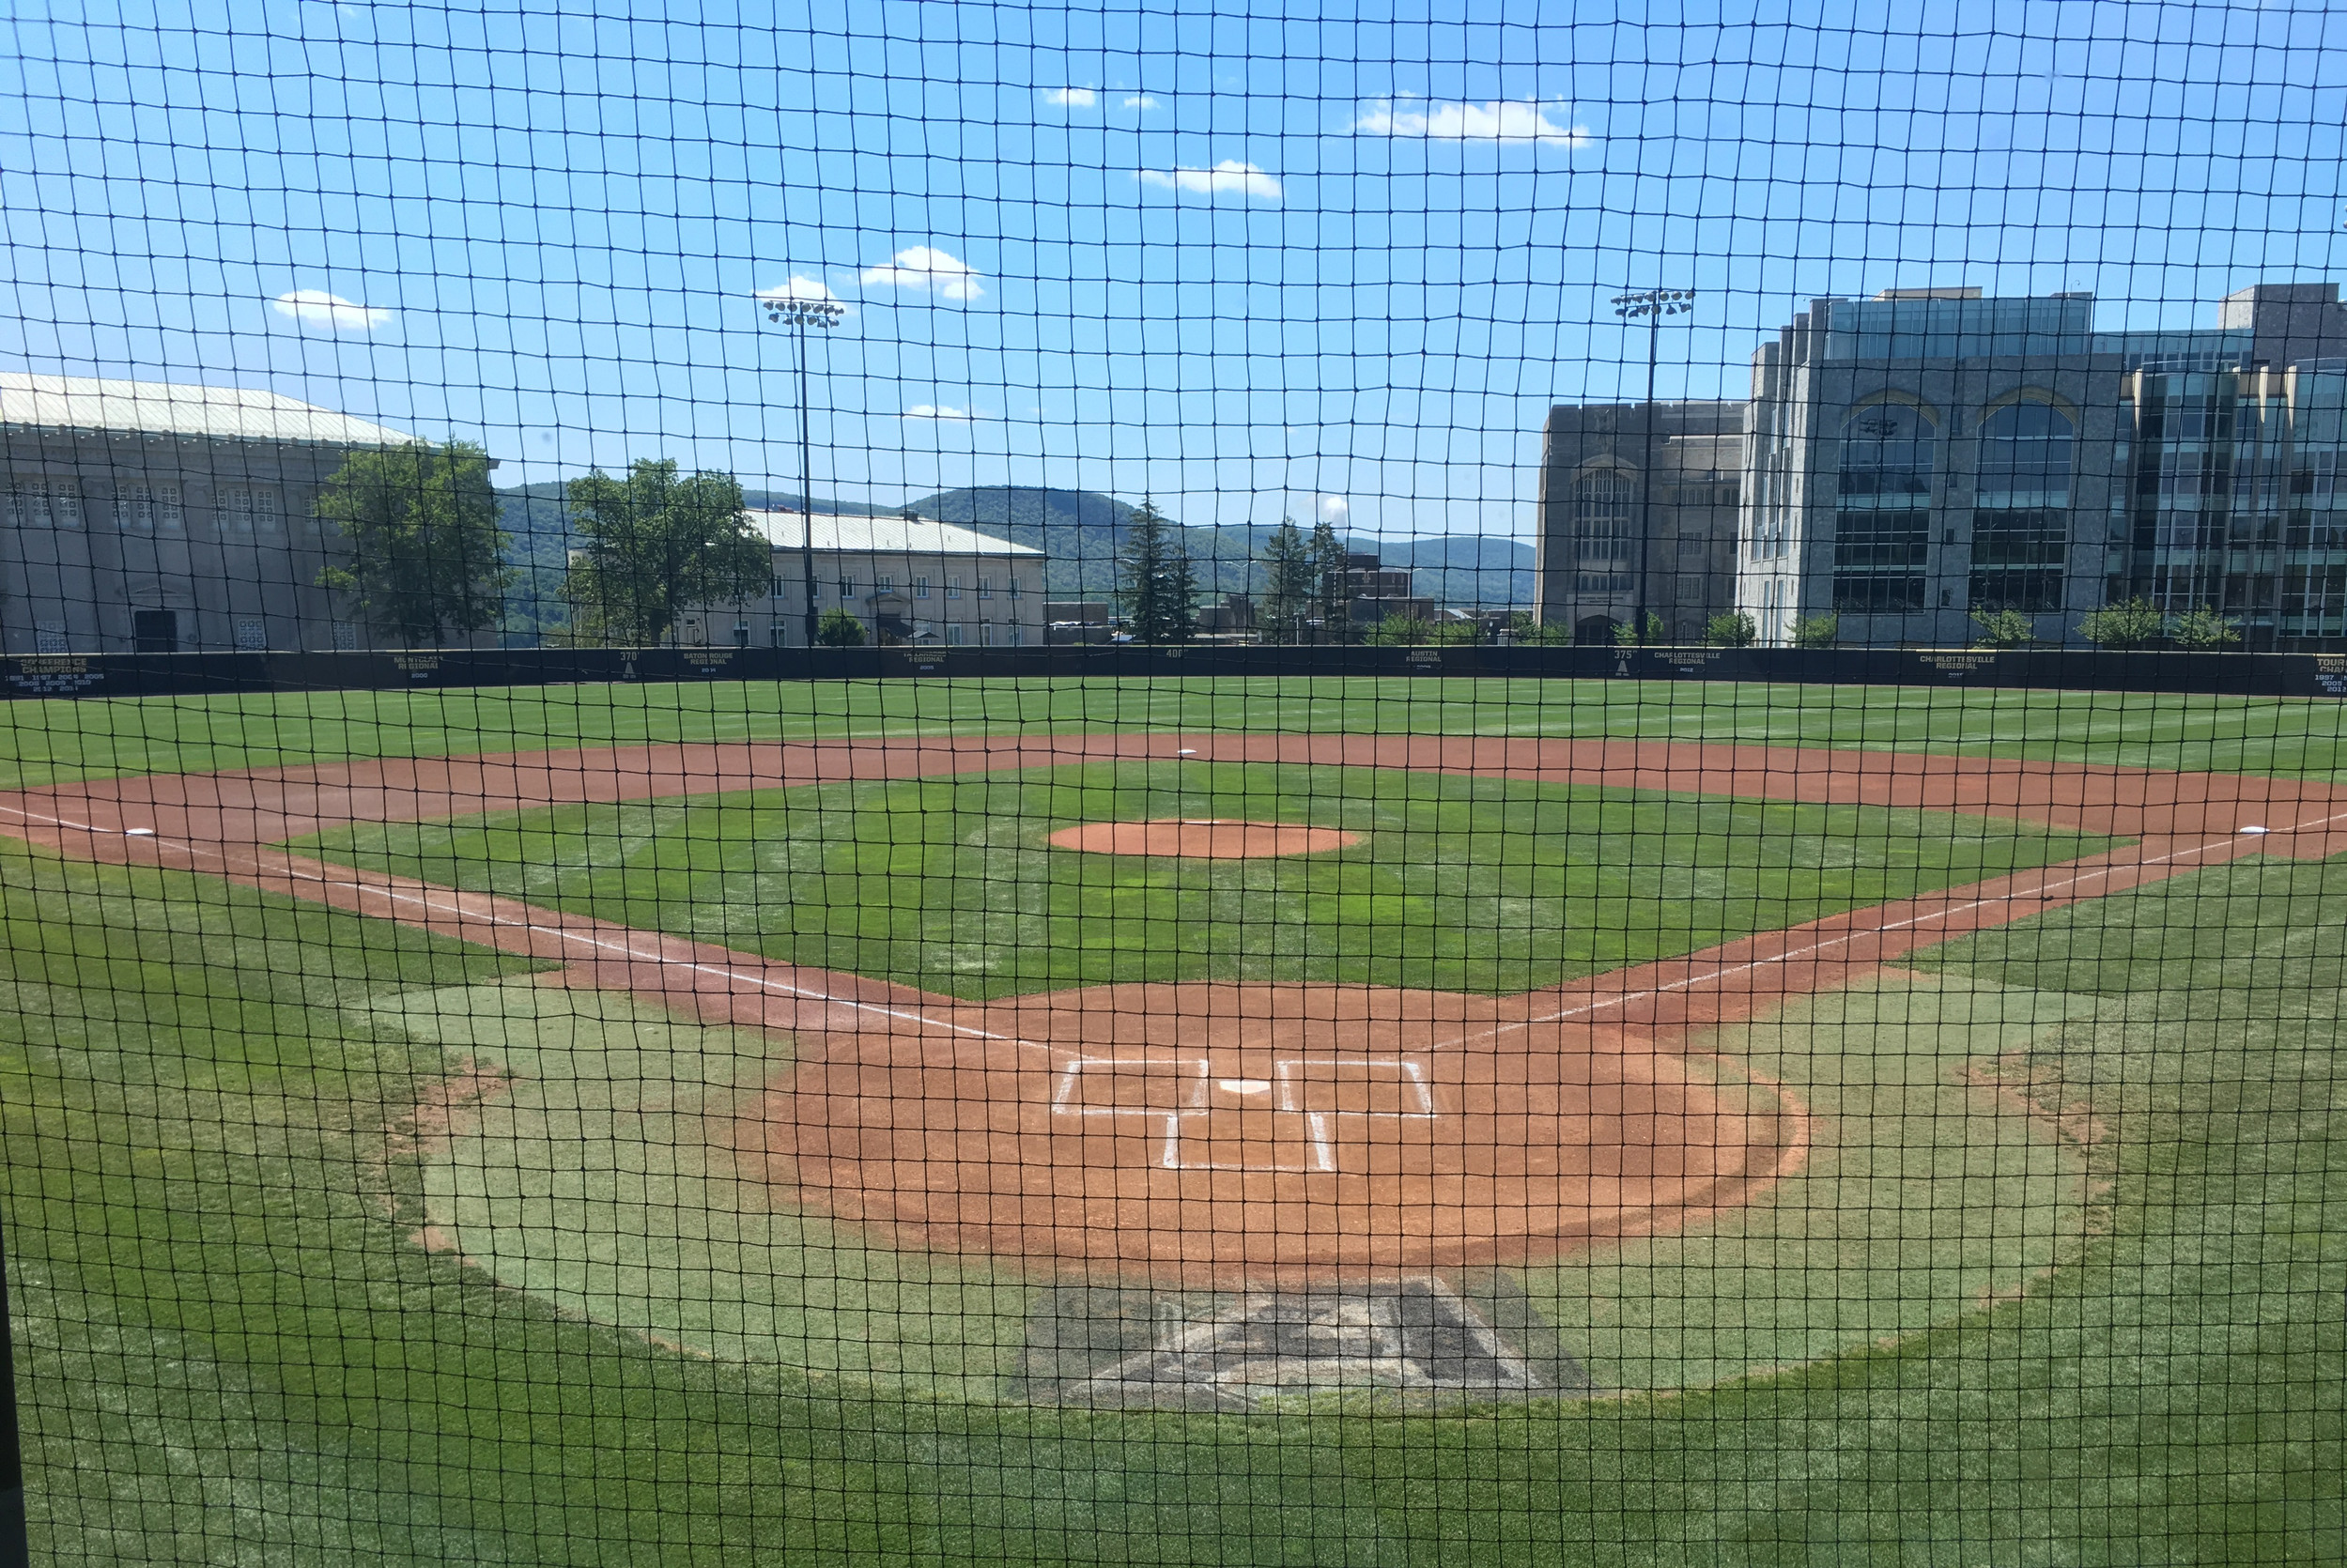 RARE OPPORTUNITY: Gershkoff got to play at Army's Doubleday Field over the weekend.